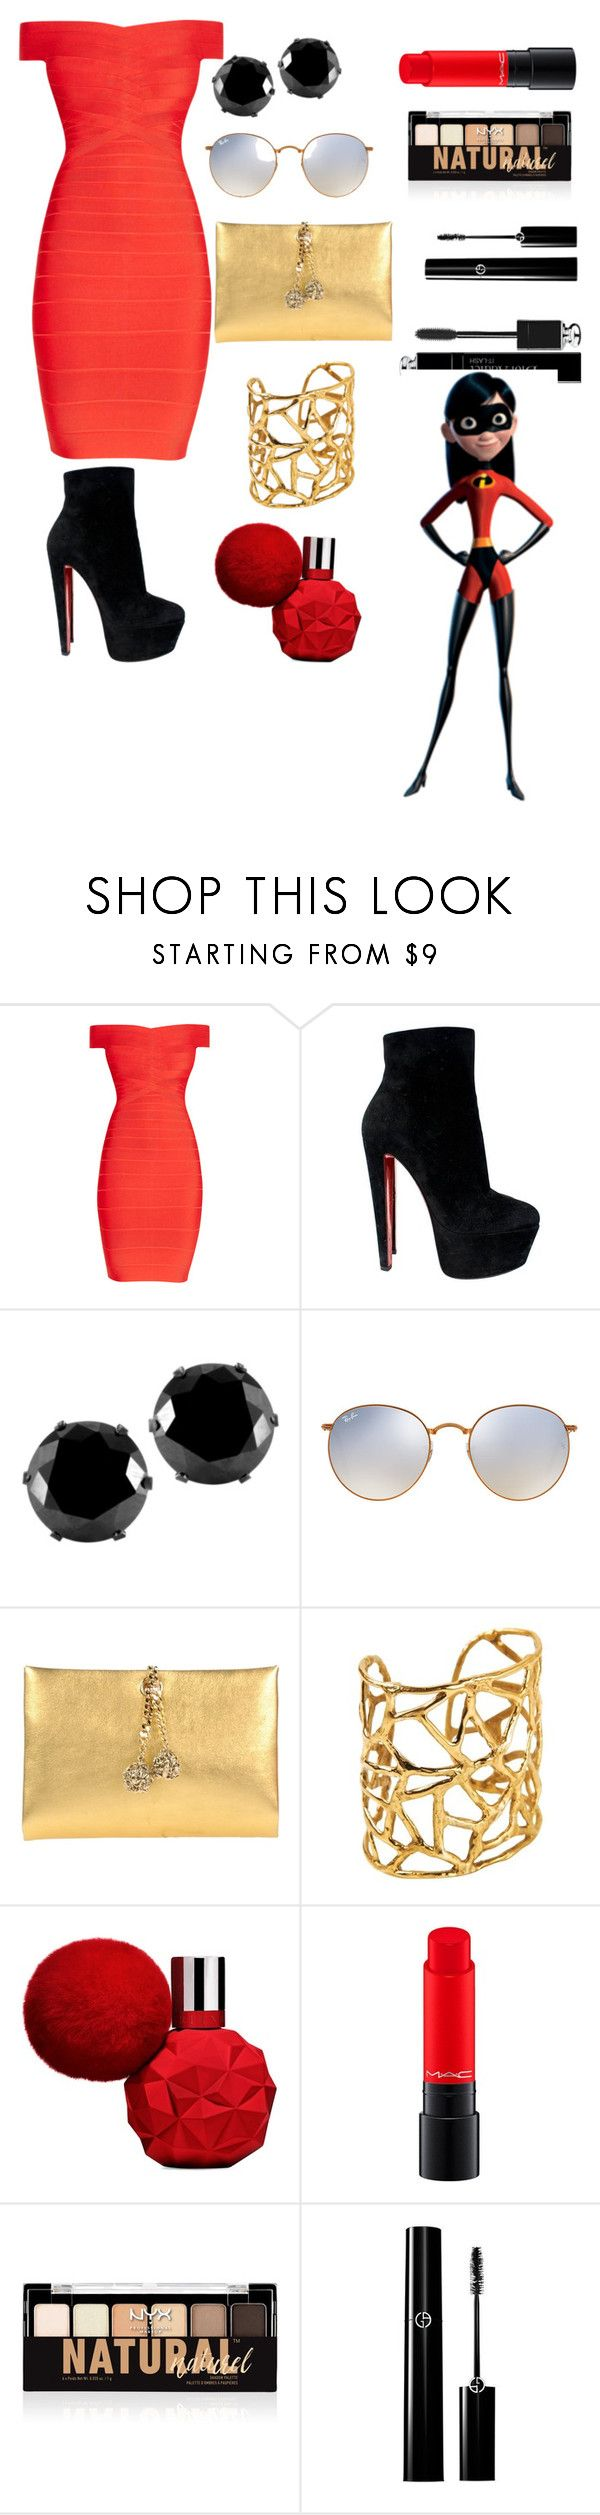 """""""The incredibles"""" by koalabear129 ❤ liked on Polyvore featuring Hervé Léger, Christian Louboutin, West Coast Jewelry, Ray-Ban, Roberto Cavalli, MAC Cosmetics, NYX, Christian Dior and Disney"""